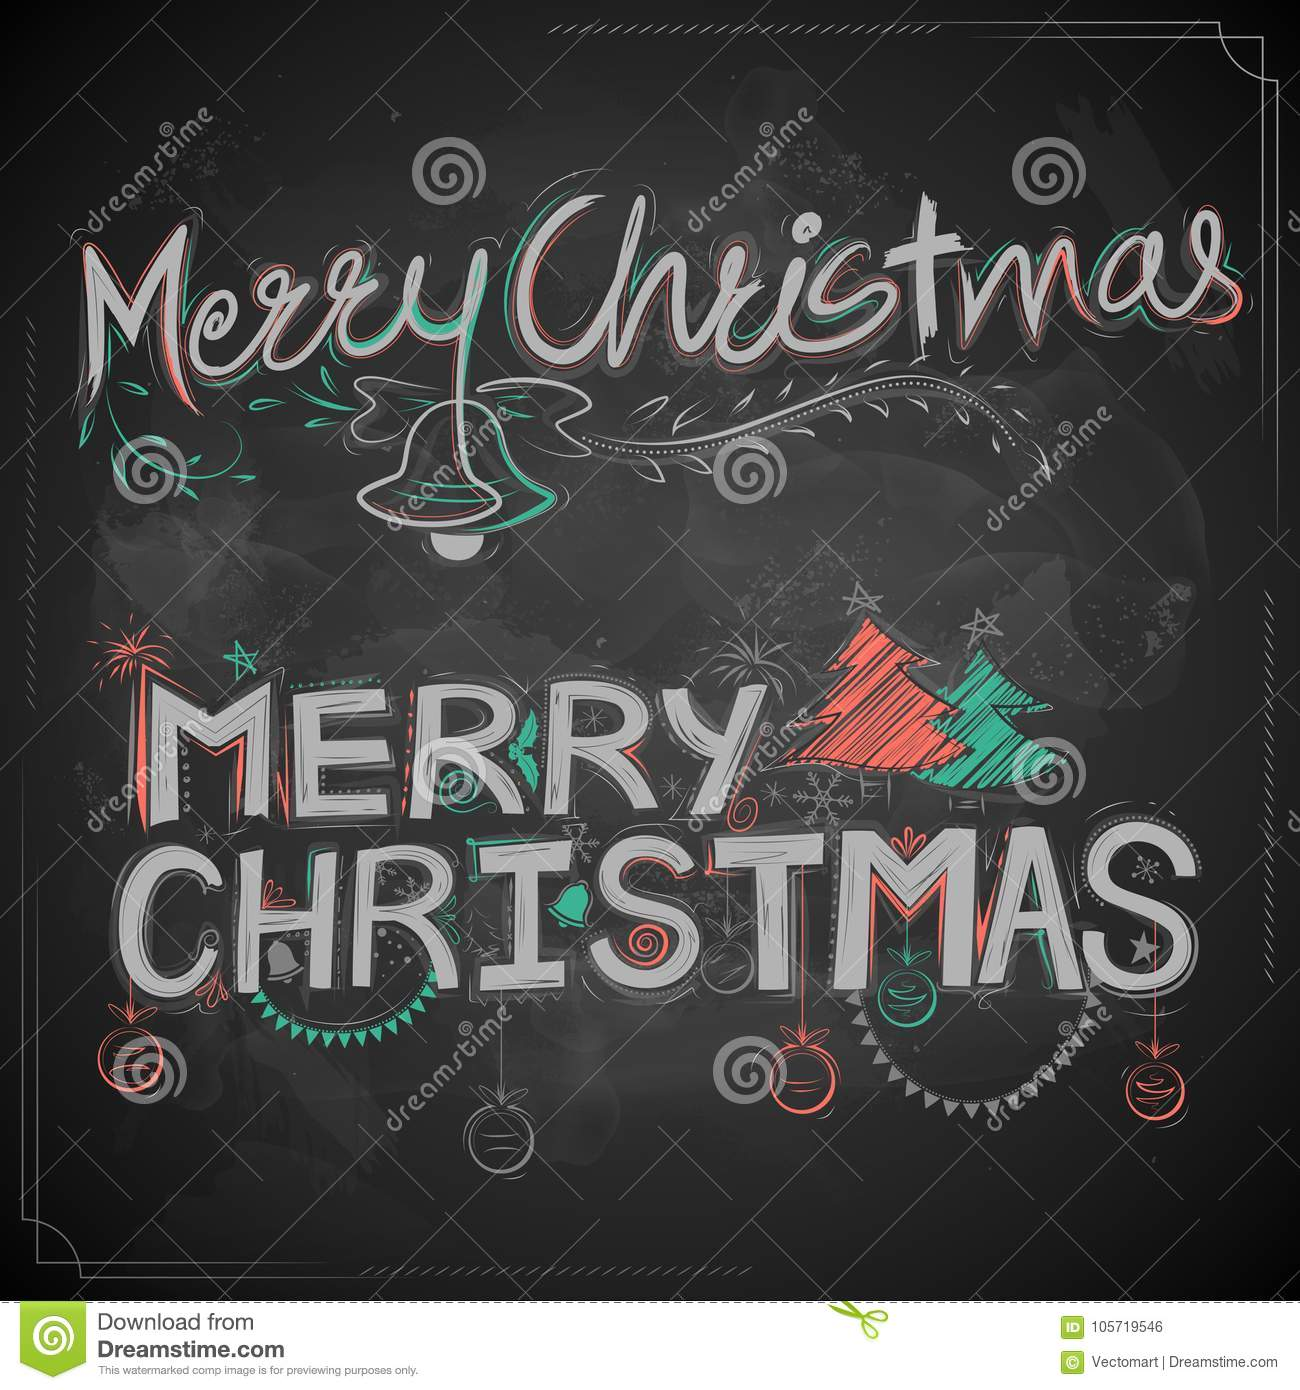 Christmas Board Design.Merry Christmas Chalk Lettering Design Set Typography Style